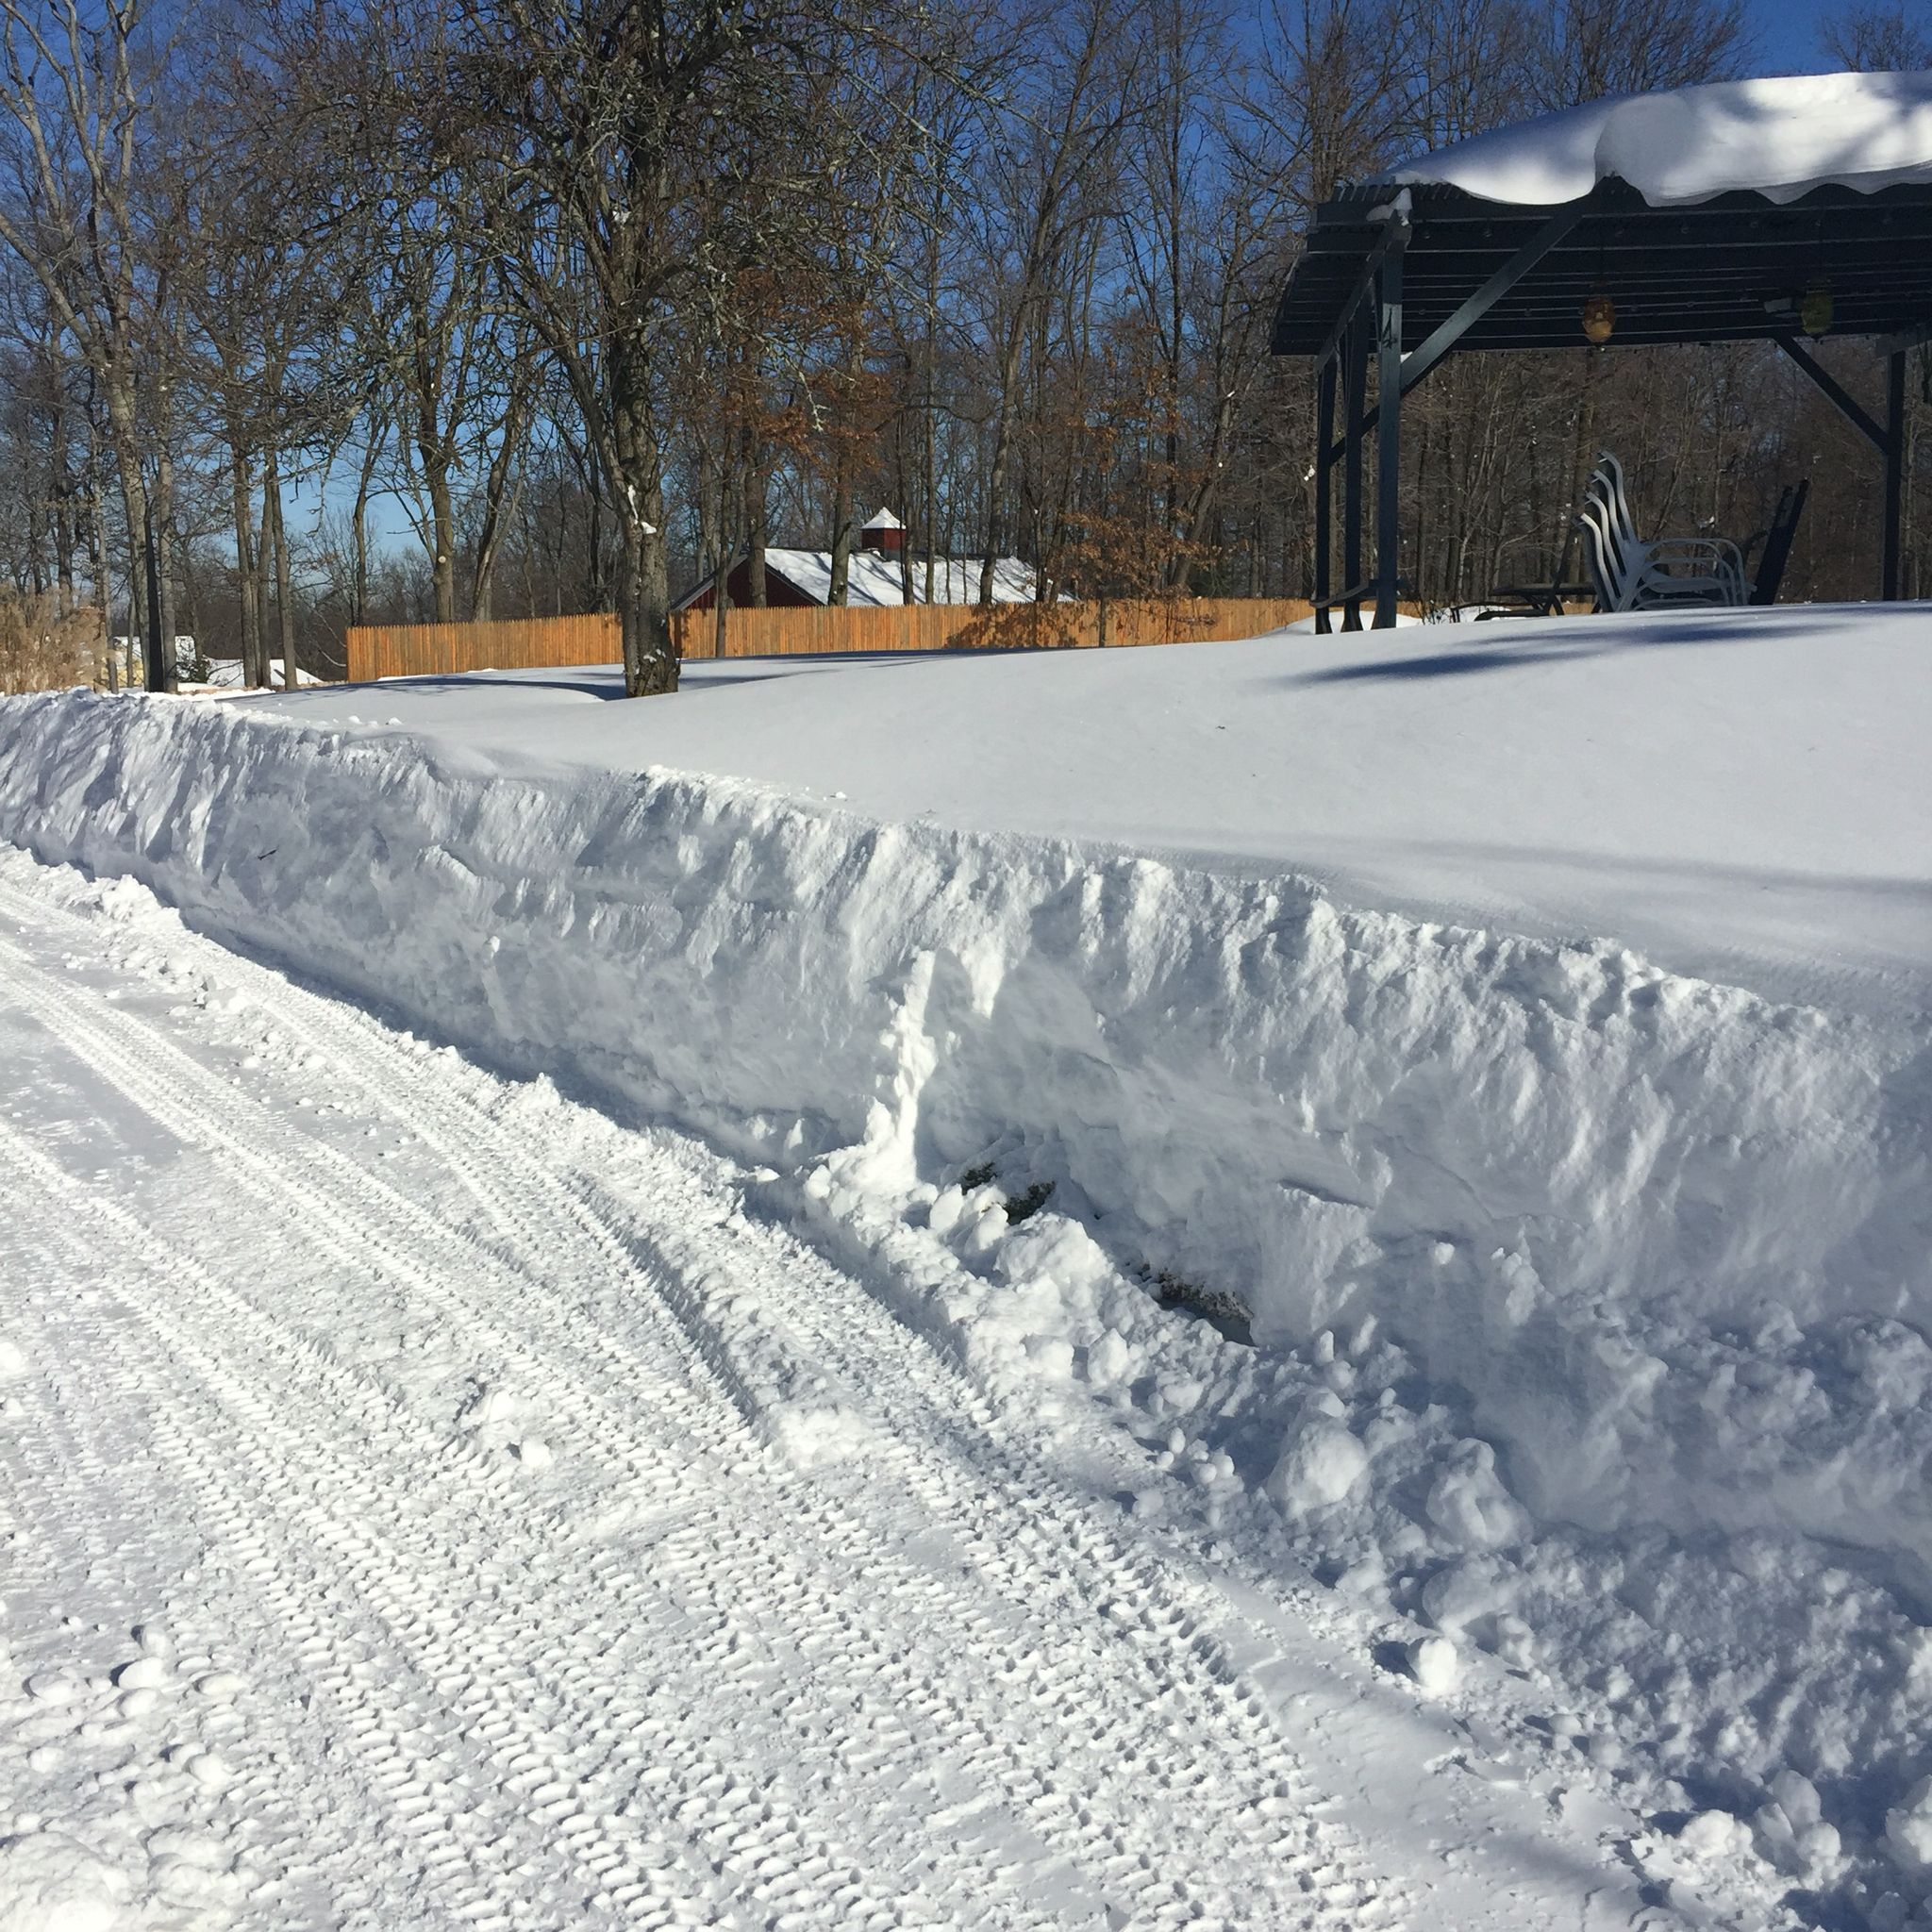 How much more snow could possibly come down?